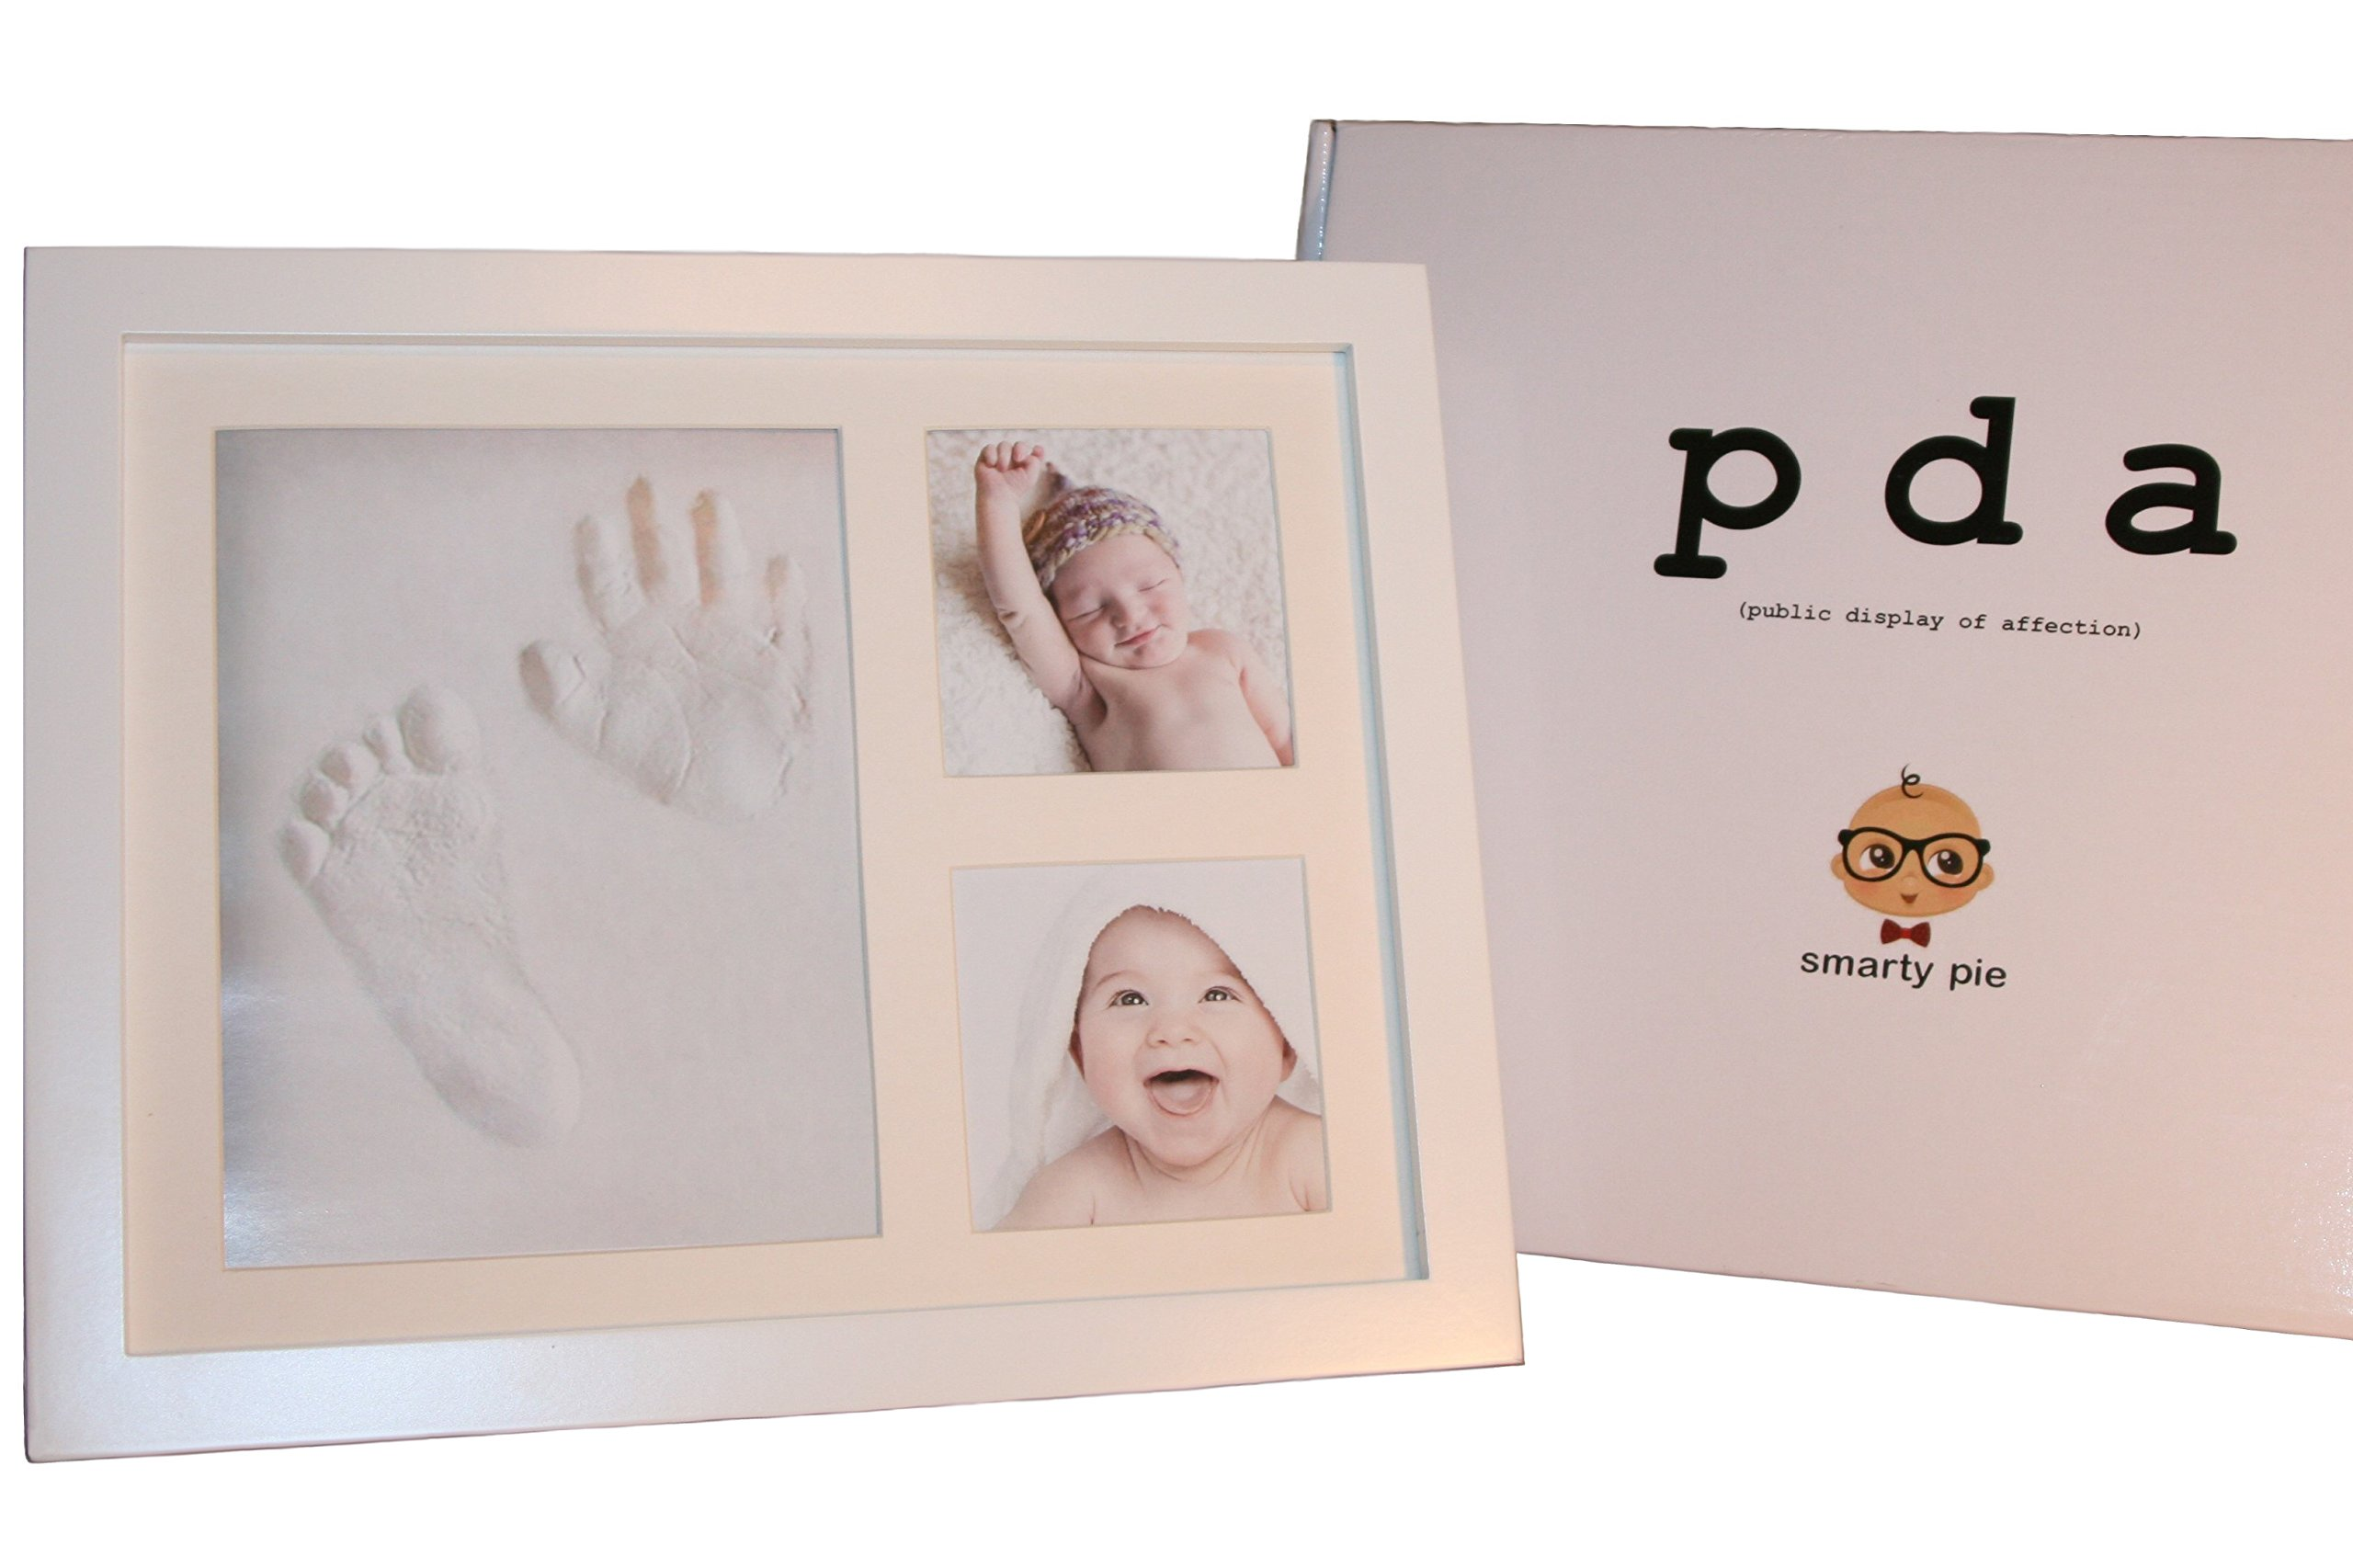 SMARTY PIE - Baby Hand Print and Footprint Picture Frame Kit - White Wood Frame To Hang On The Wall Or Set On A Table - Stylish Baby Shower, Child's First Birthday, or Christmas Gift - Non-Toxic Clay